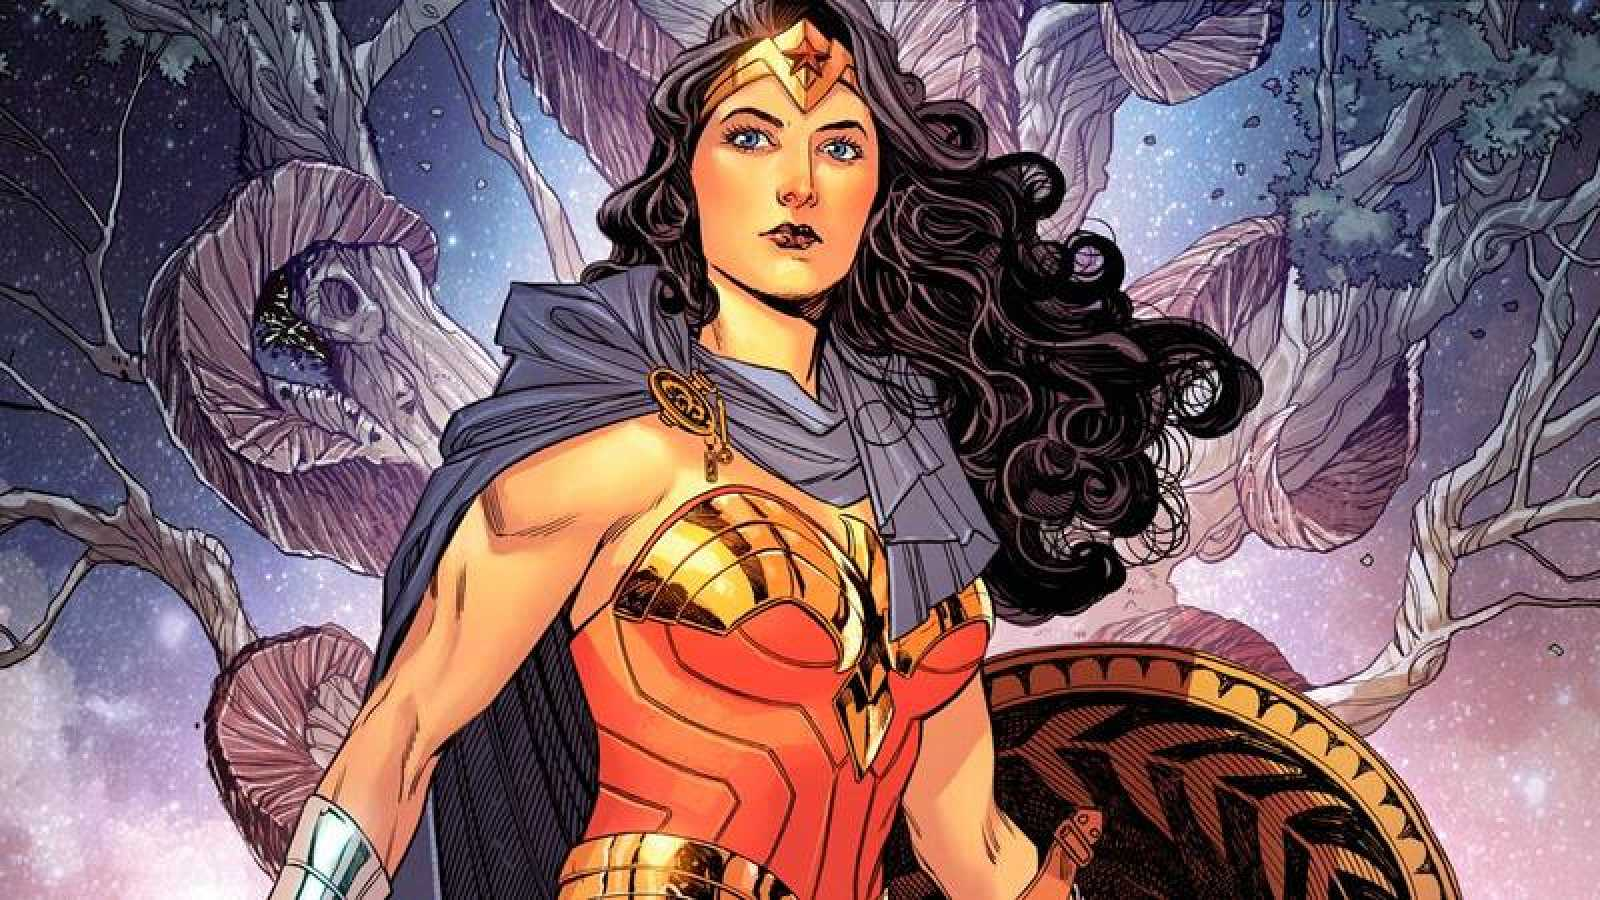 Wonder Woman vista por Bilquis Evely